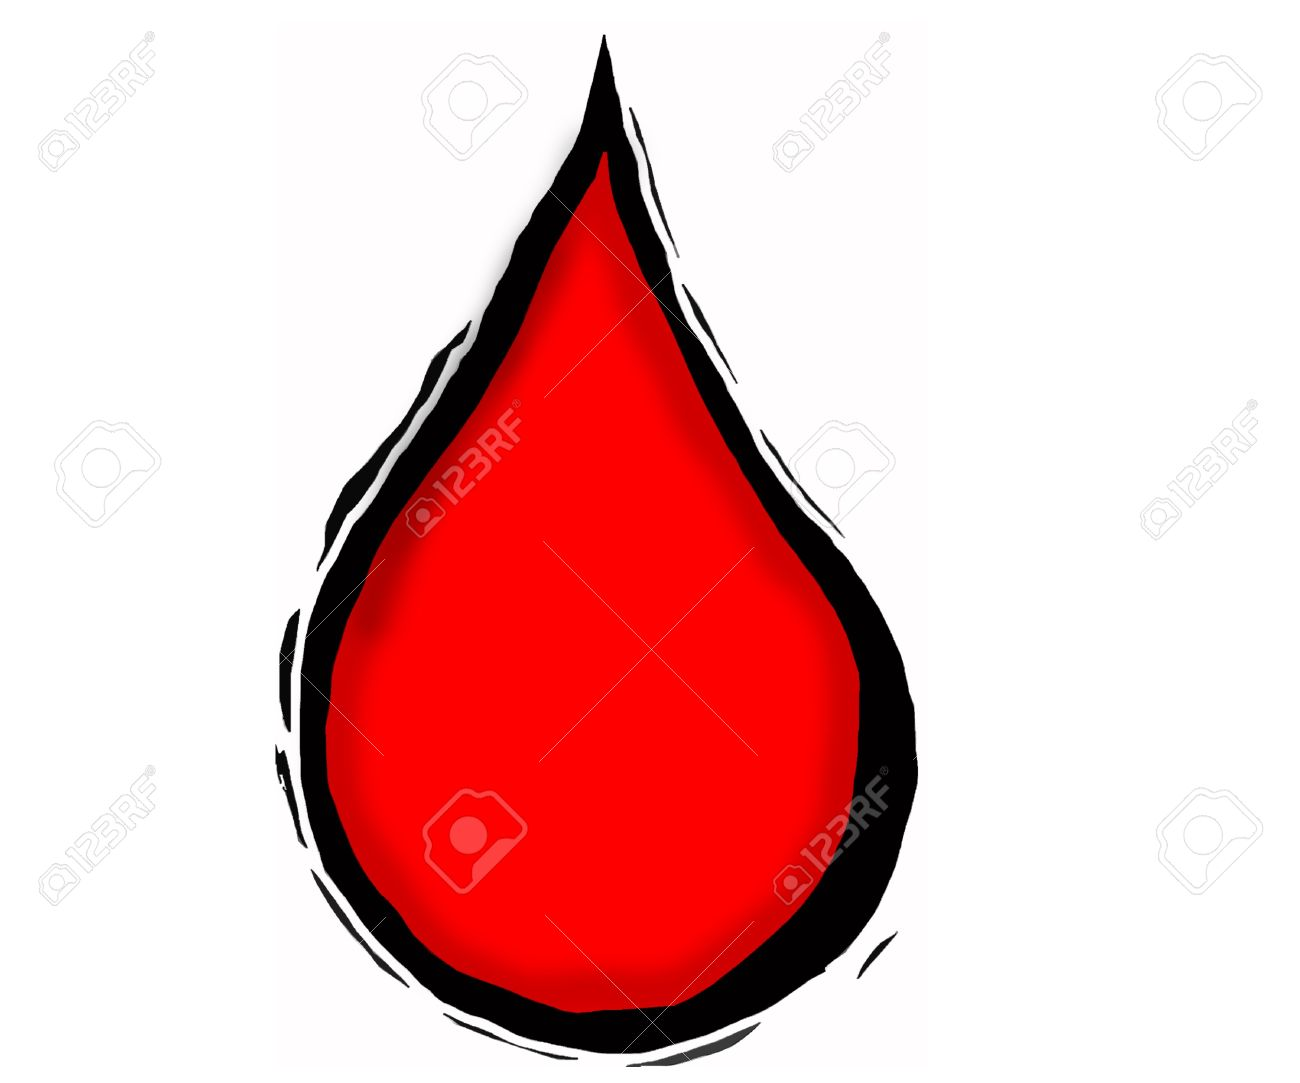 blood drop clipart red in colour with 3d effect stock photo picture rh 123rf com Blood Drop Clip Art Black and White blood drop clipart png